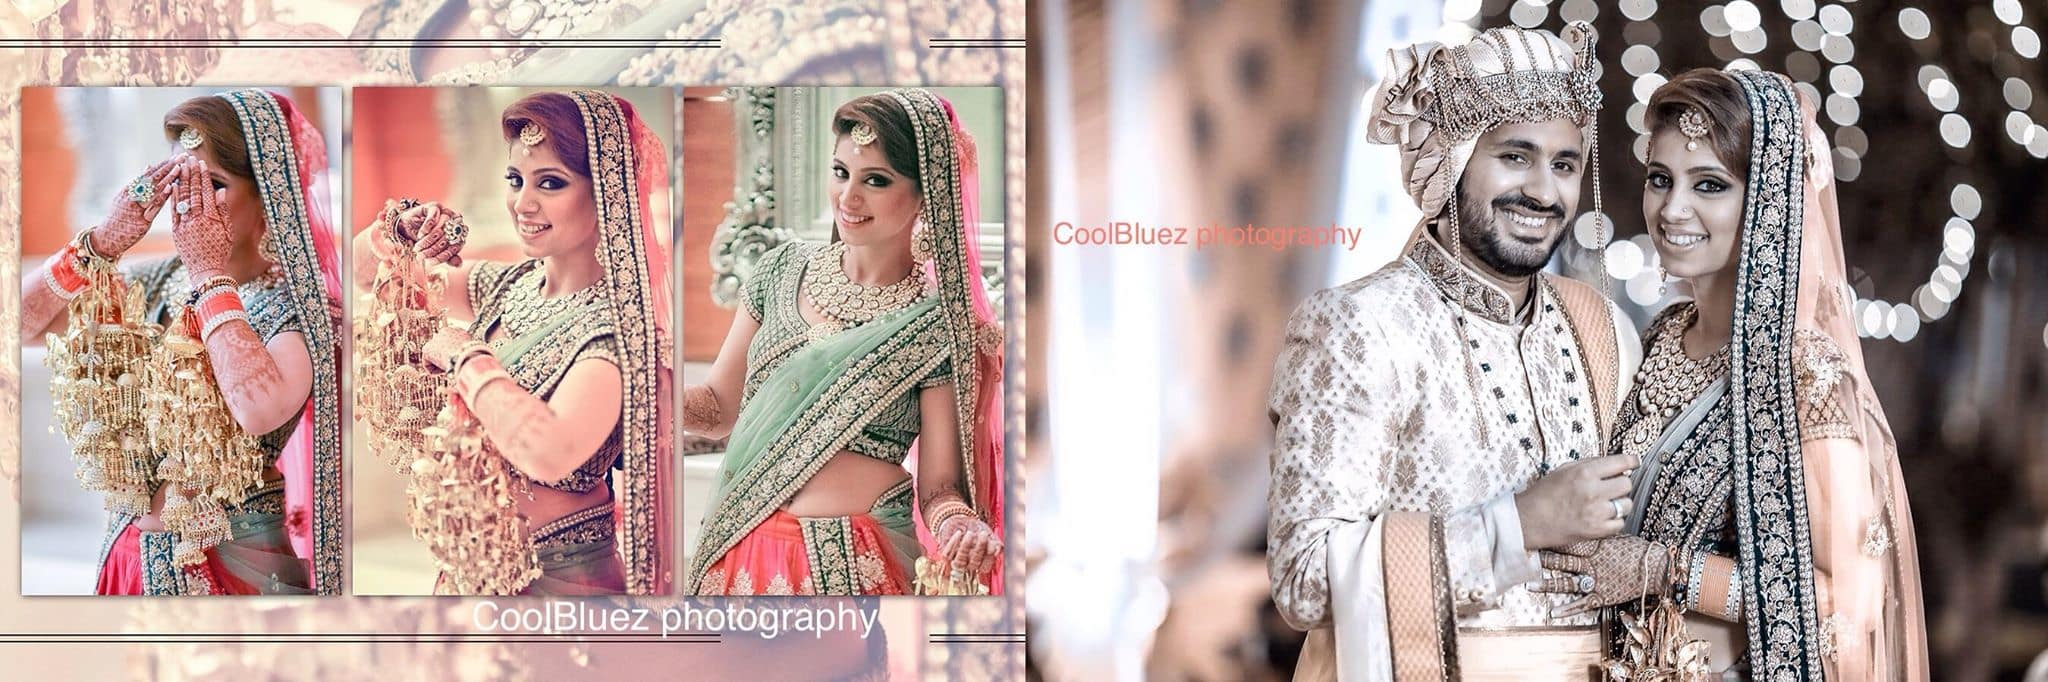 beautiful bridal clicks:coolbluez photography